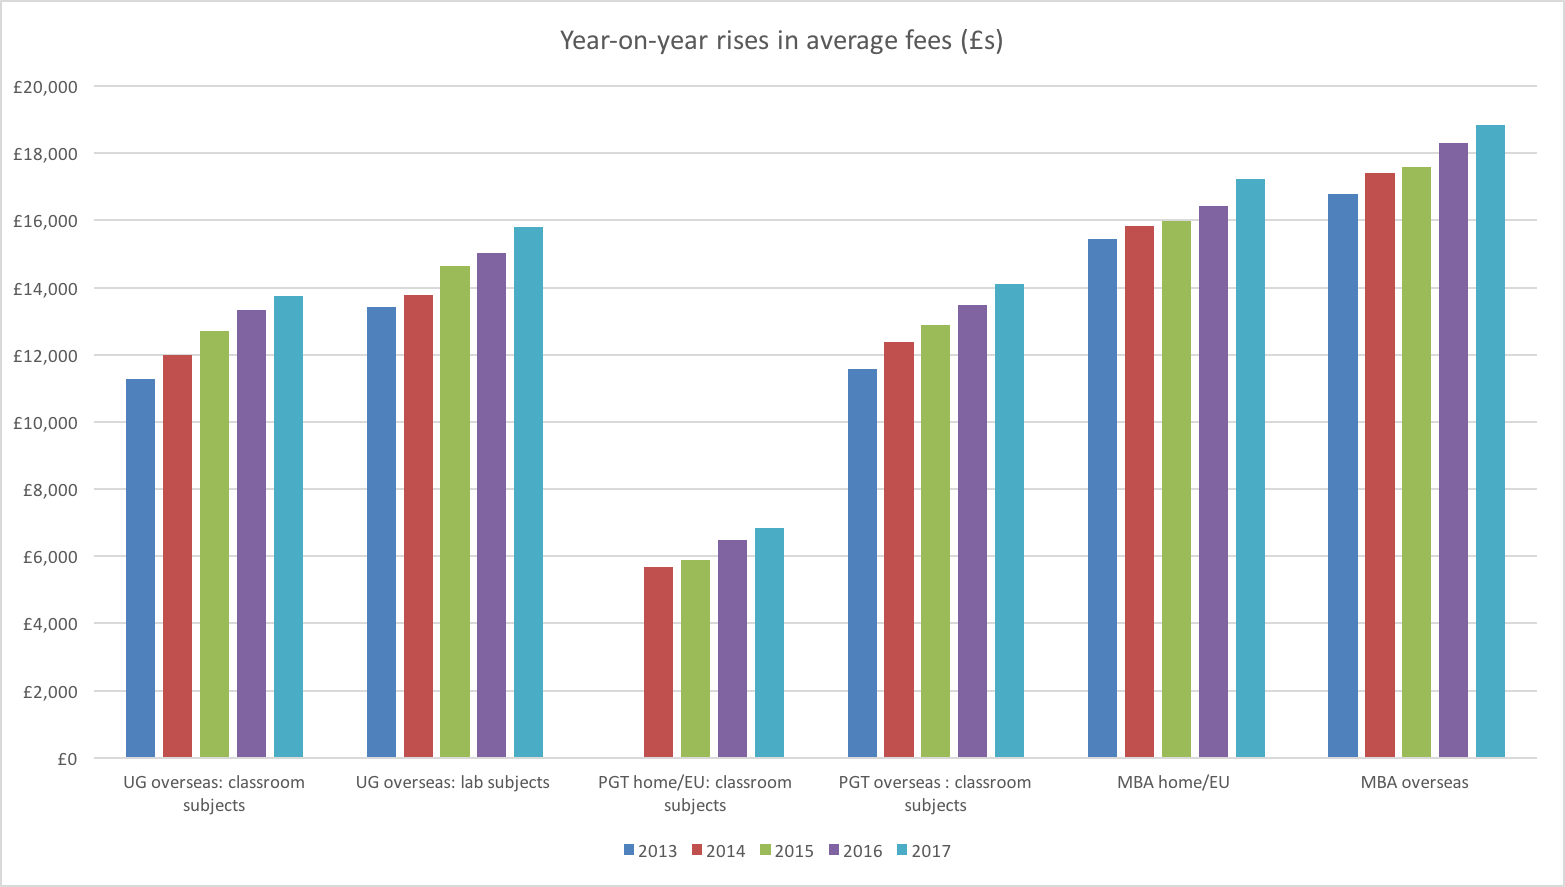 Year-on-year rises in average fees